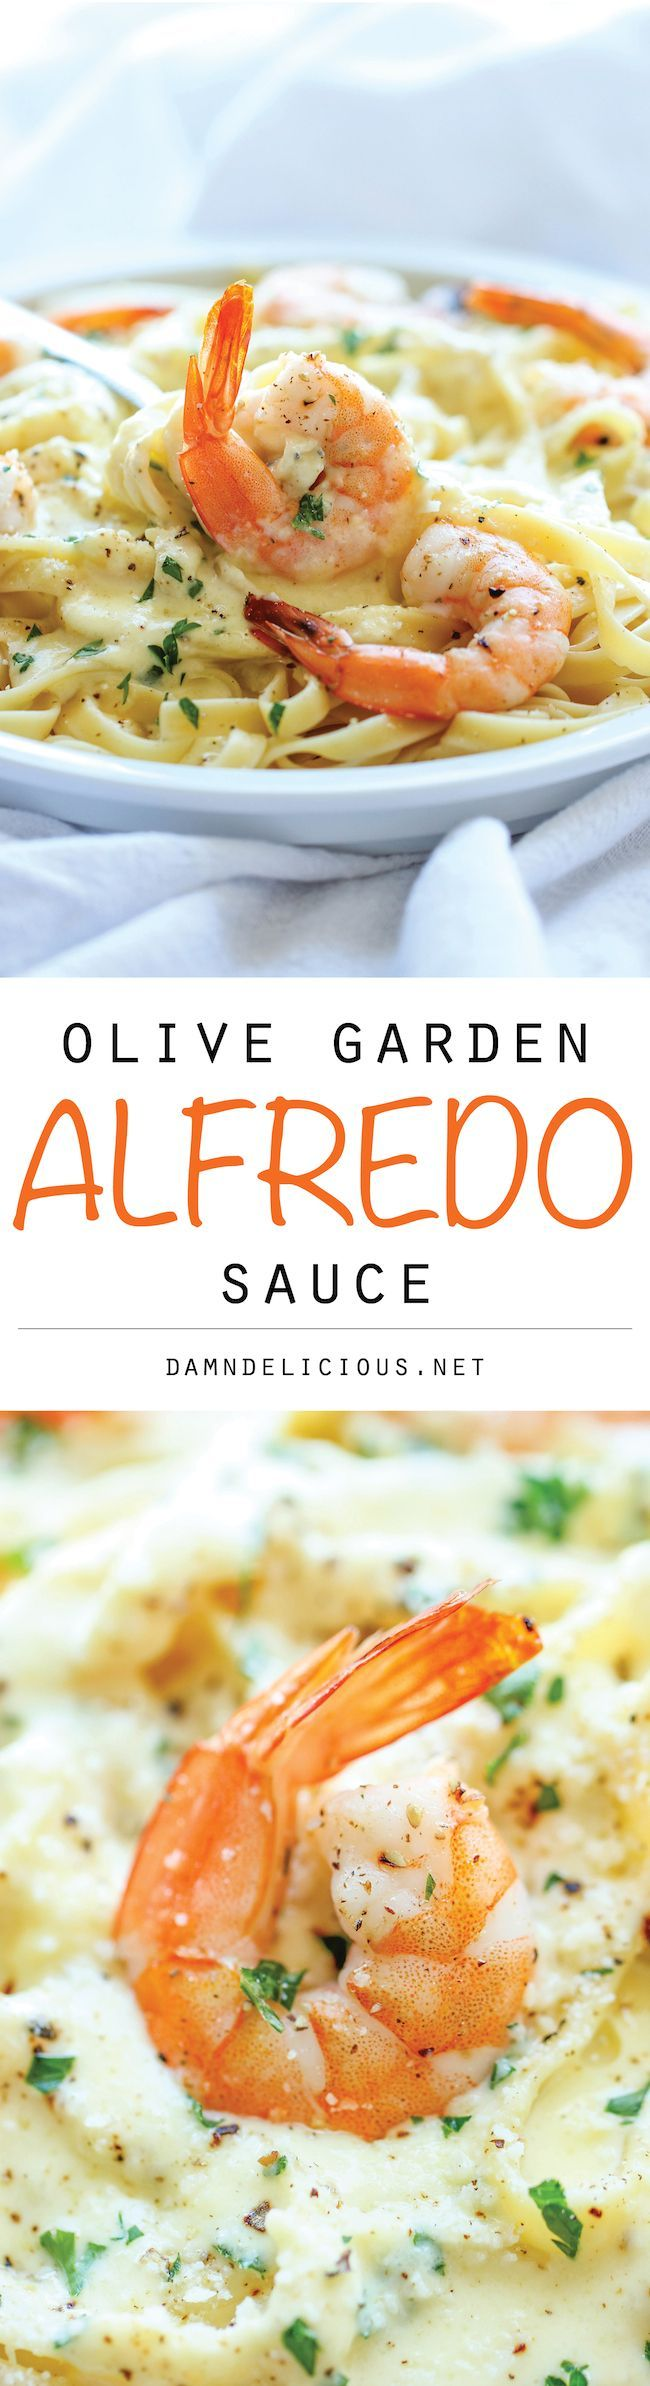 7 best images about just like it hmmm copy cat on - Olive garden chicken alfredo sauce recipe ...